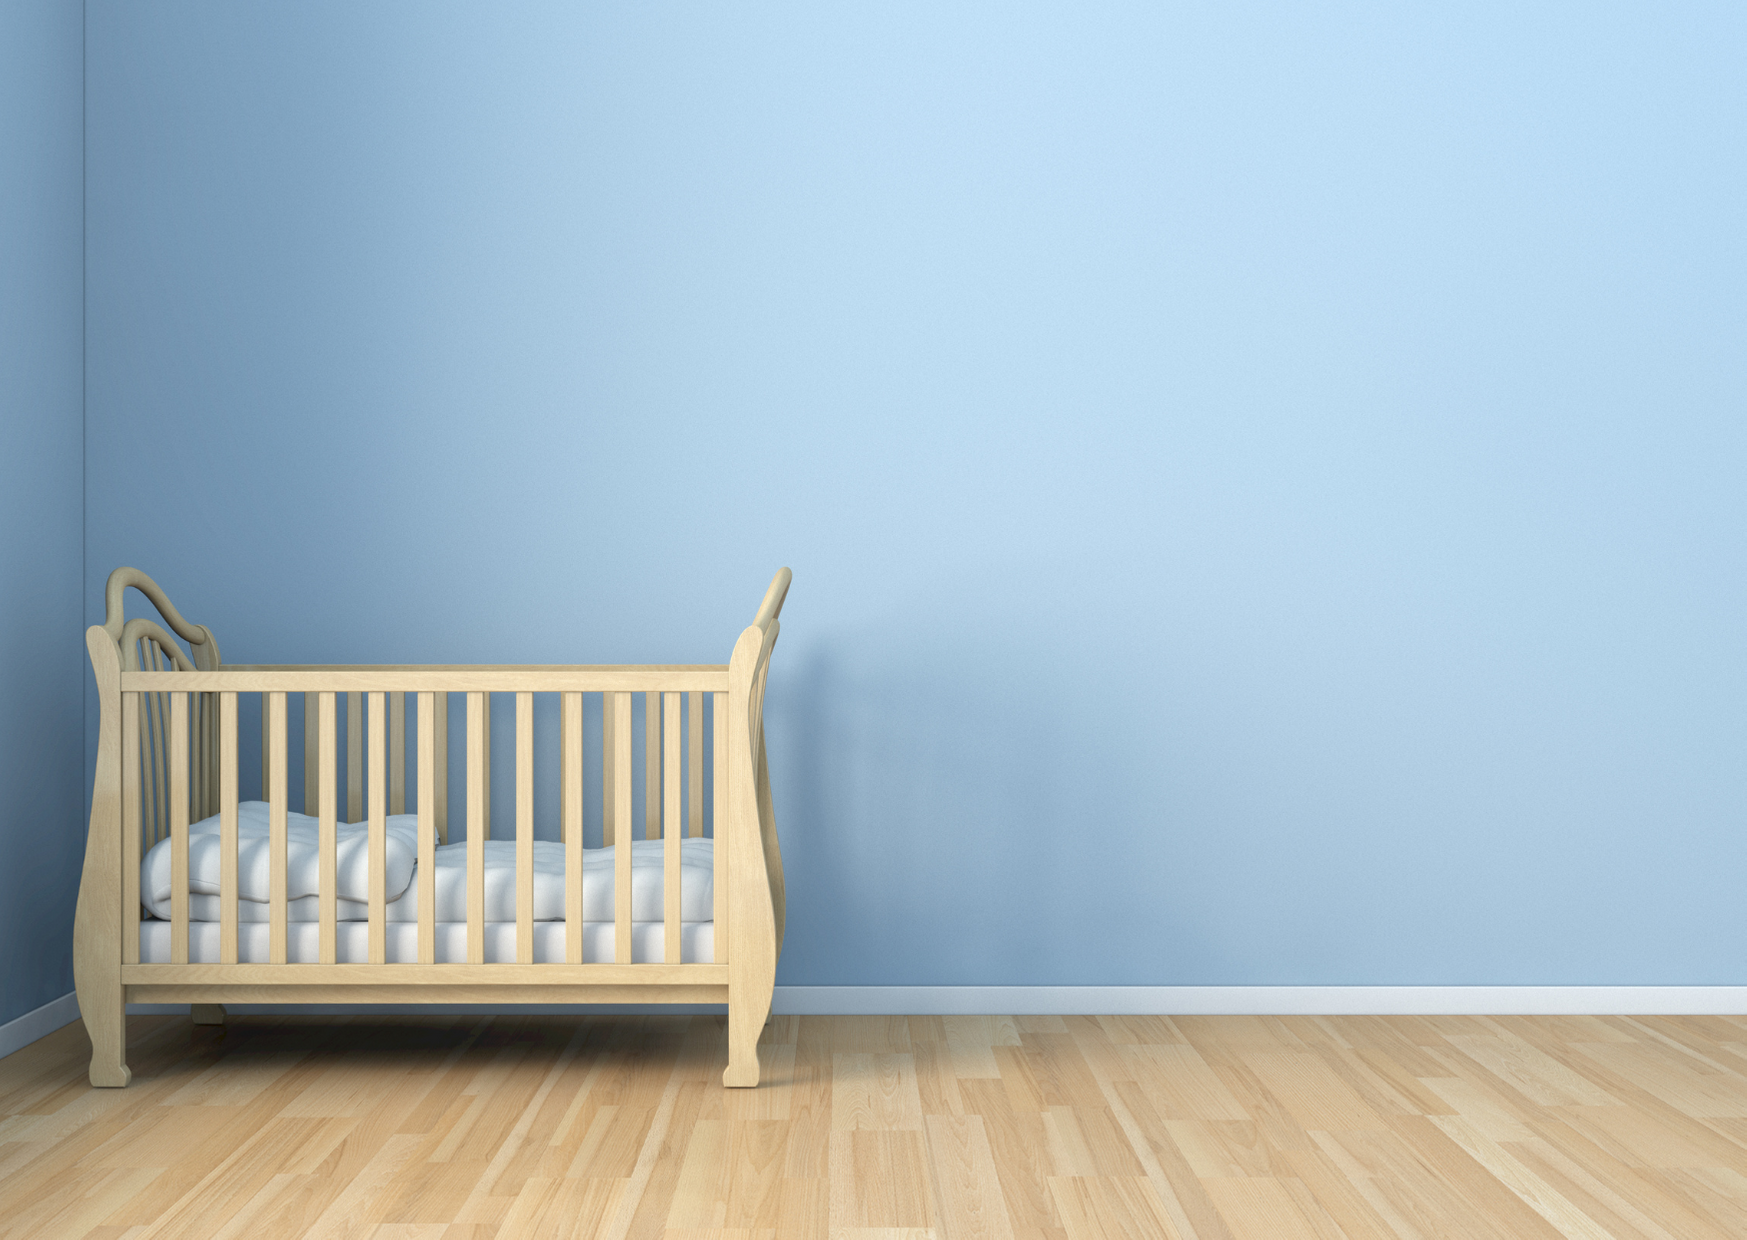 What's the best flooring for a child's bedroom